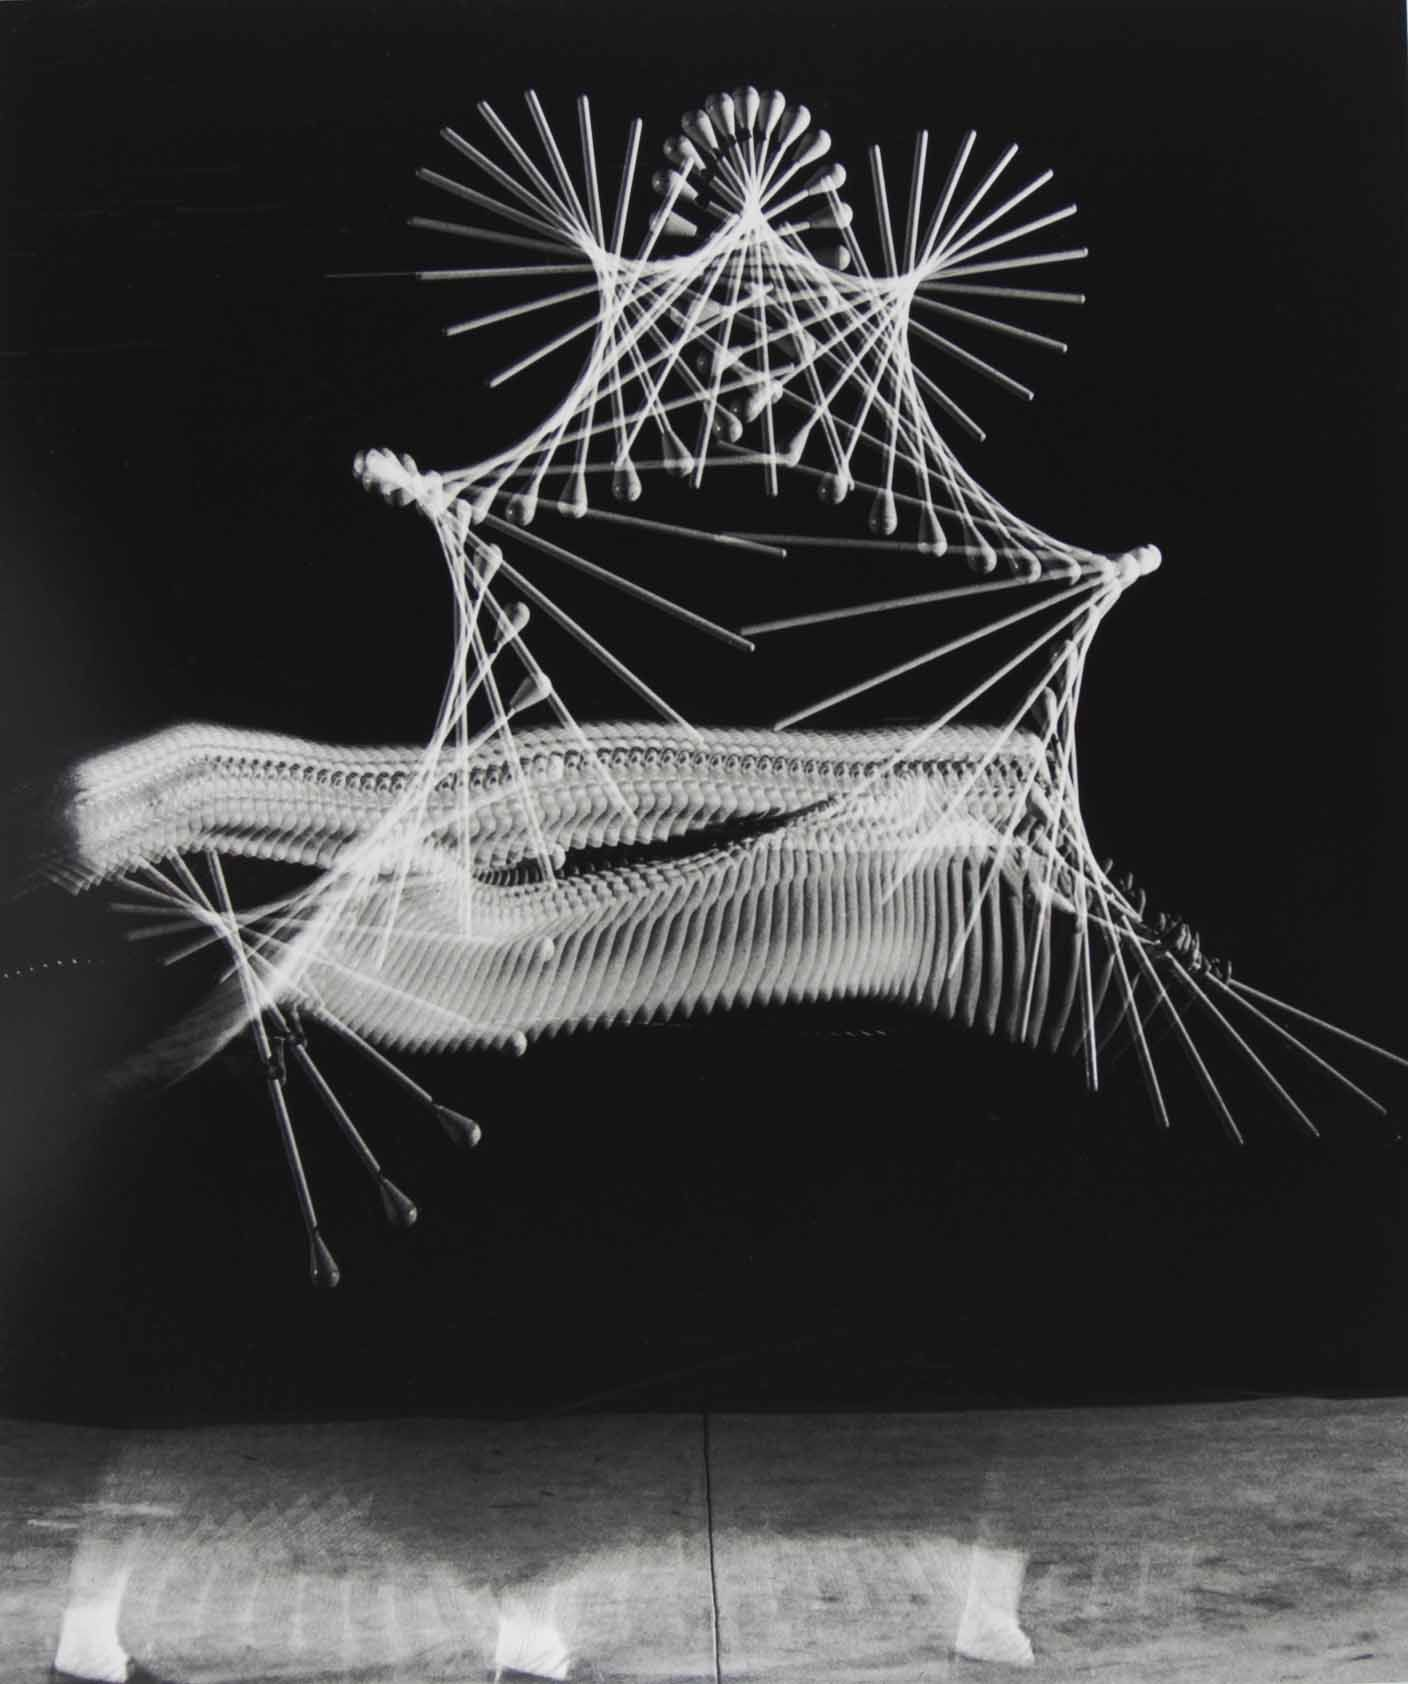 <i>Baton Multiflash (Ghost Feet),</i> 1953<br> gelatin silver print<br> 22 x 18 inches<br> With ghostly feet and only parts of her face showing, young Muriel Sutherland intently watches her baton as she throws it high in the air and moves rapidly forward to catch it. The multiflash was firing 60 times per second.